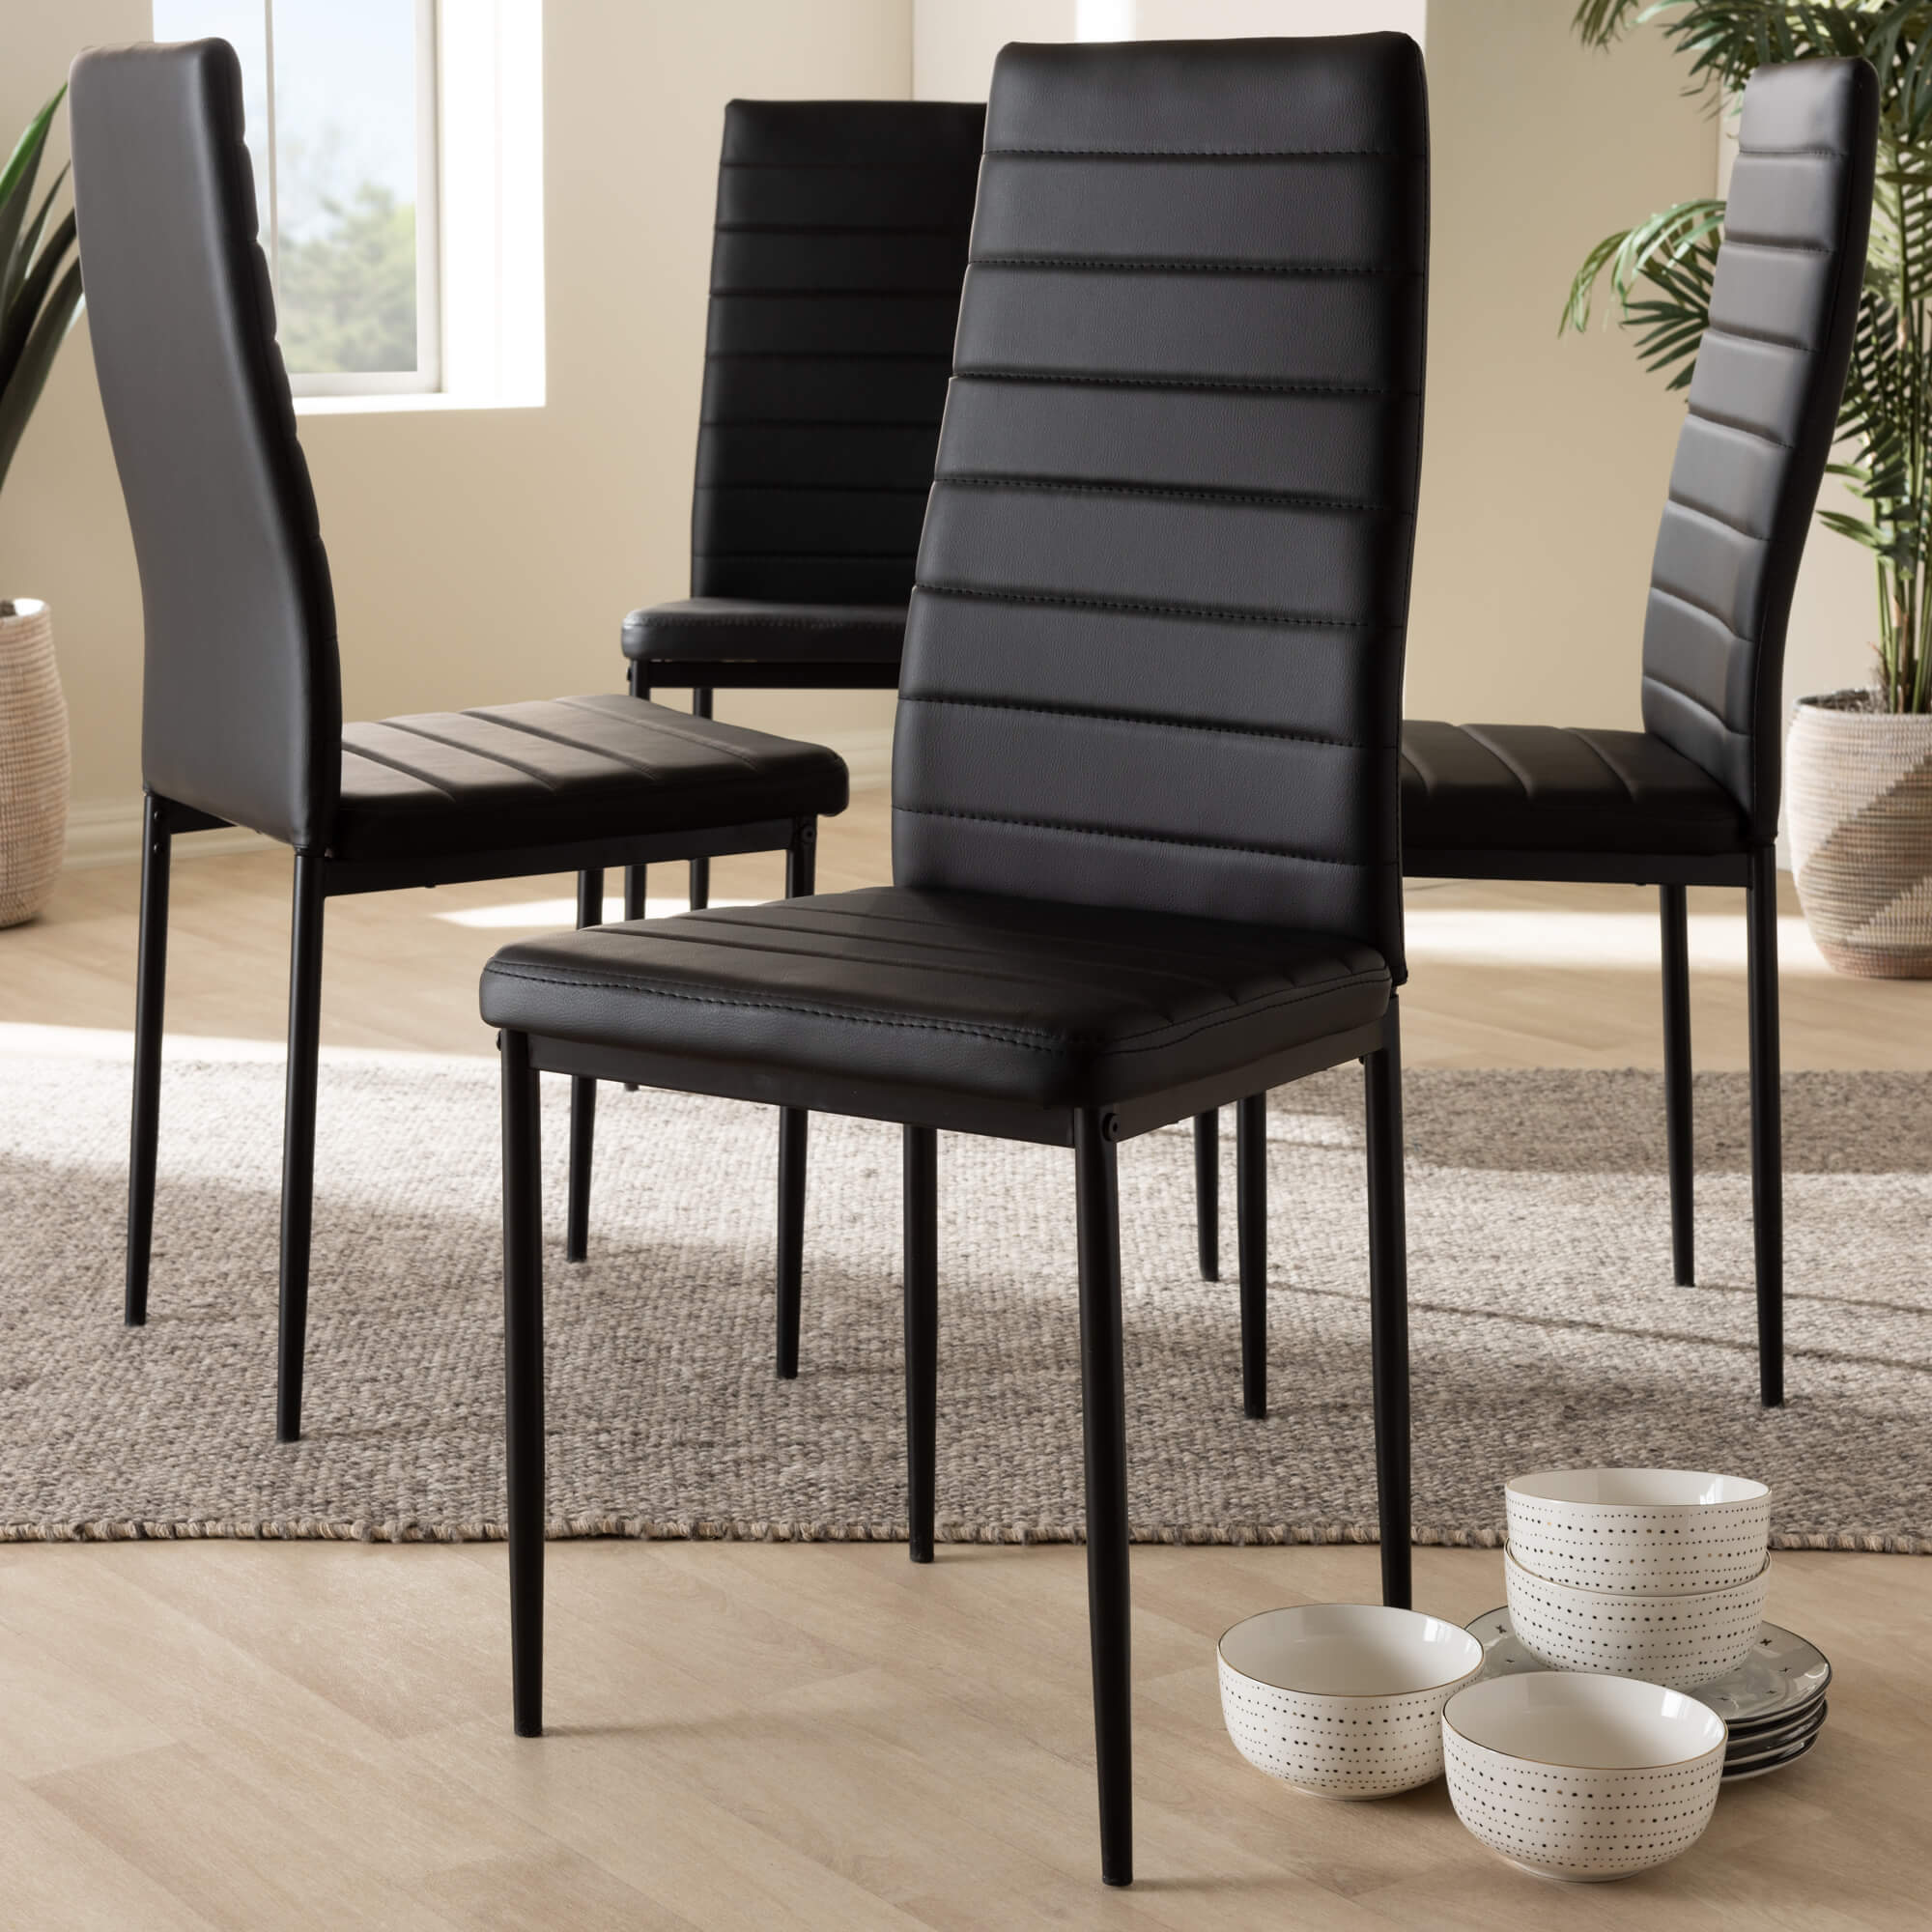 Set of 4 Baxton Studio Armand Modern and Contemporary Black Faux Leather Upholstered Dining Chairs